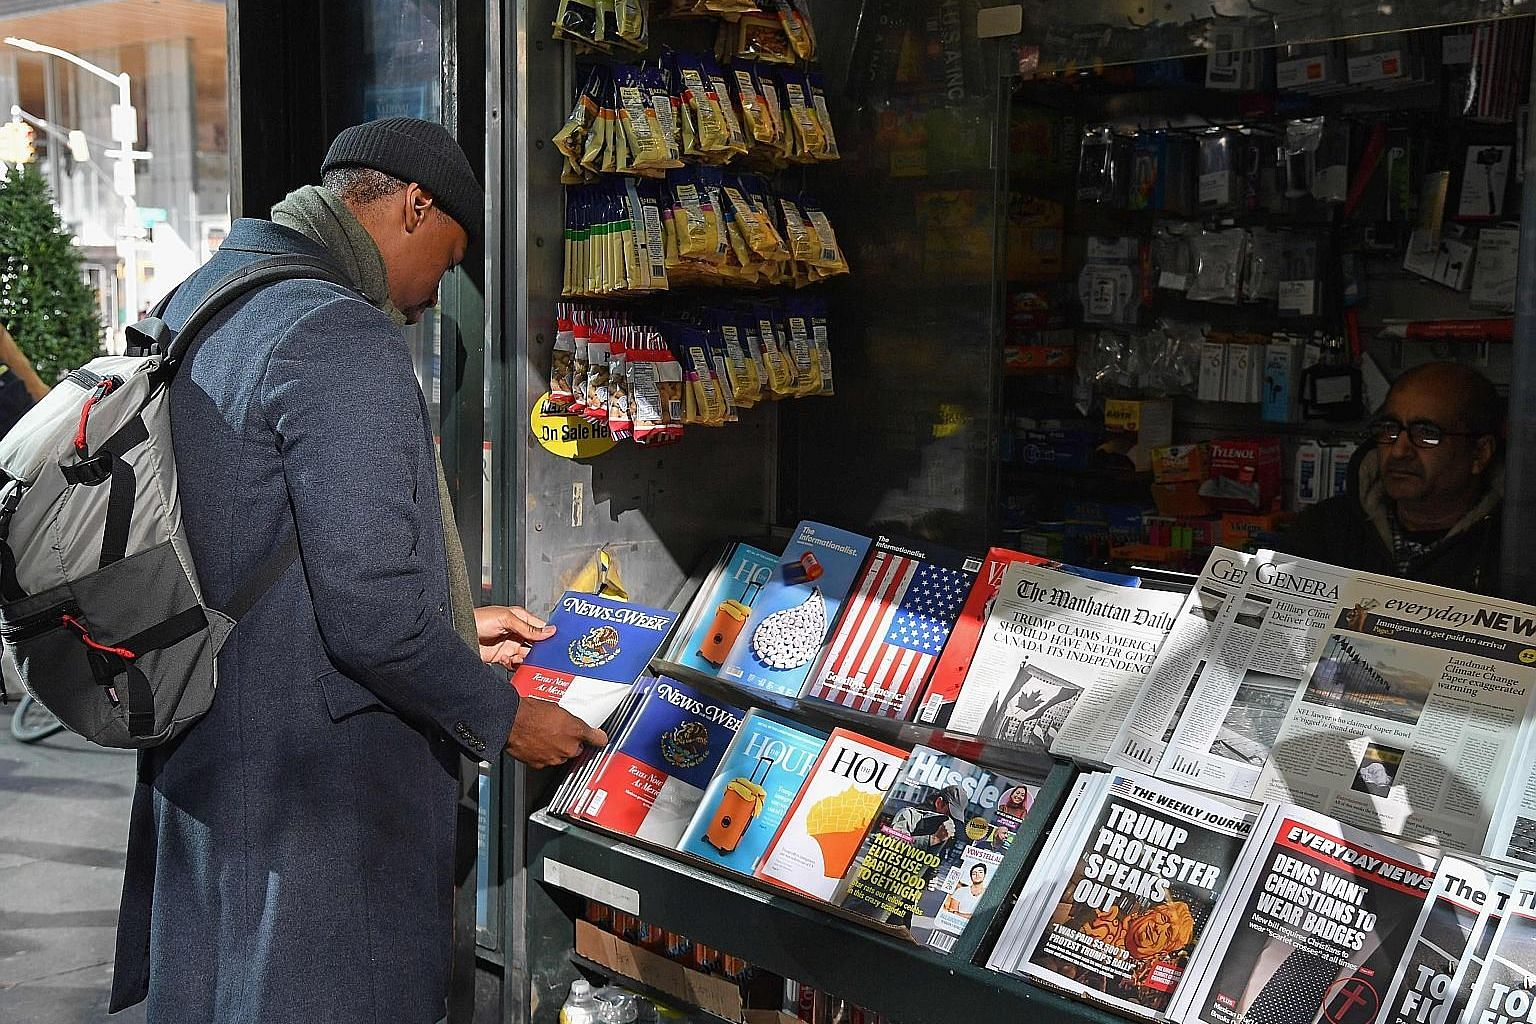 A misinformation newsstand in Manhattan aimed at educating people about the dangers of fake news. The stand is outfitted with false stories taken from the Internet and printed on newspapers and magazines that mirror the design of legitimate publicati